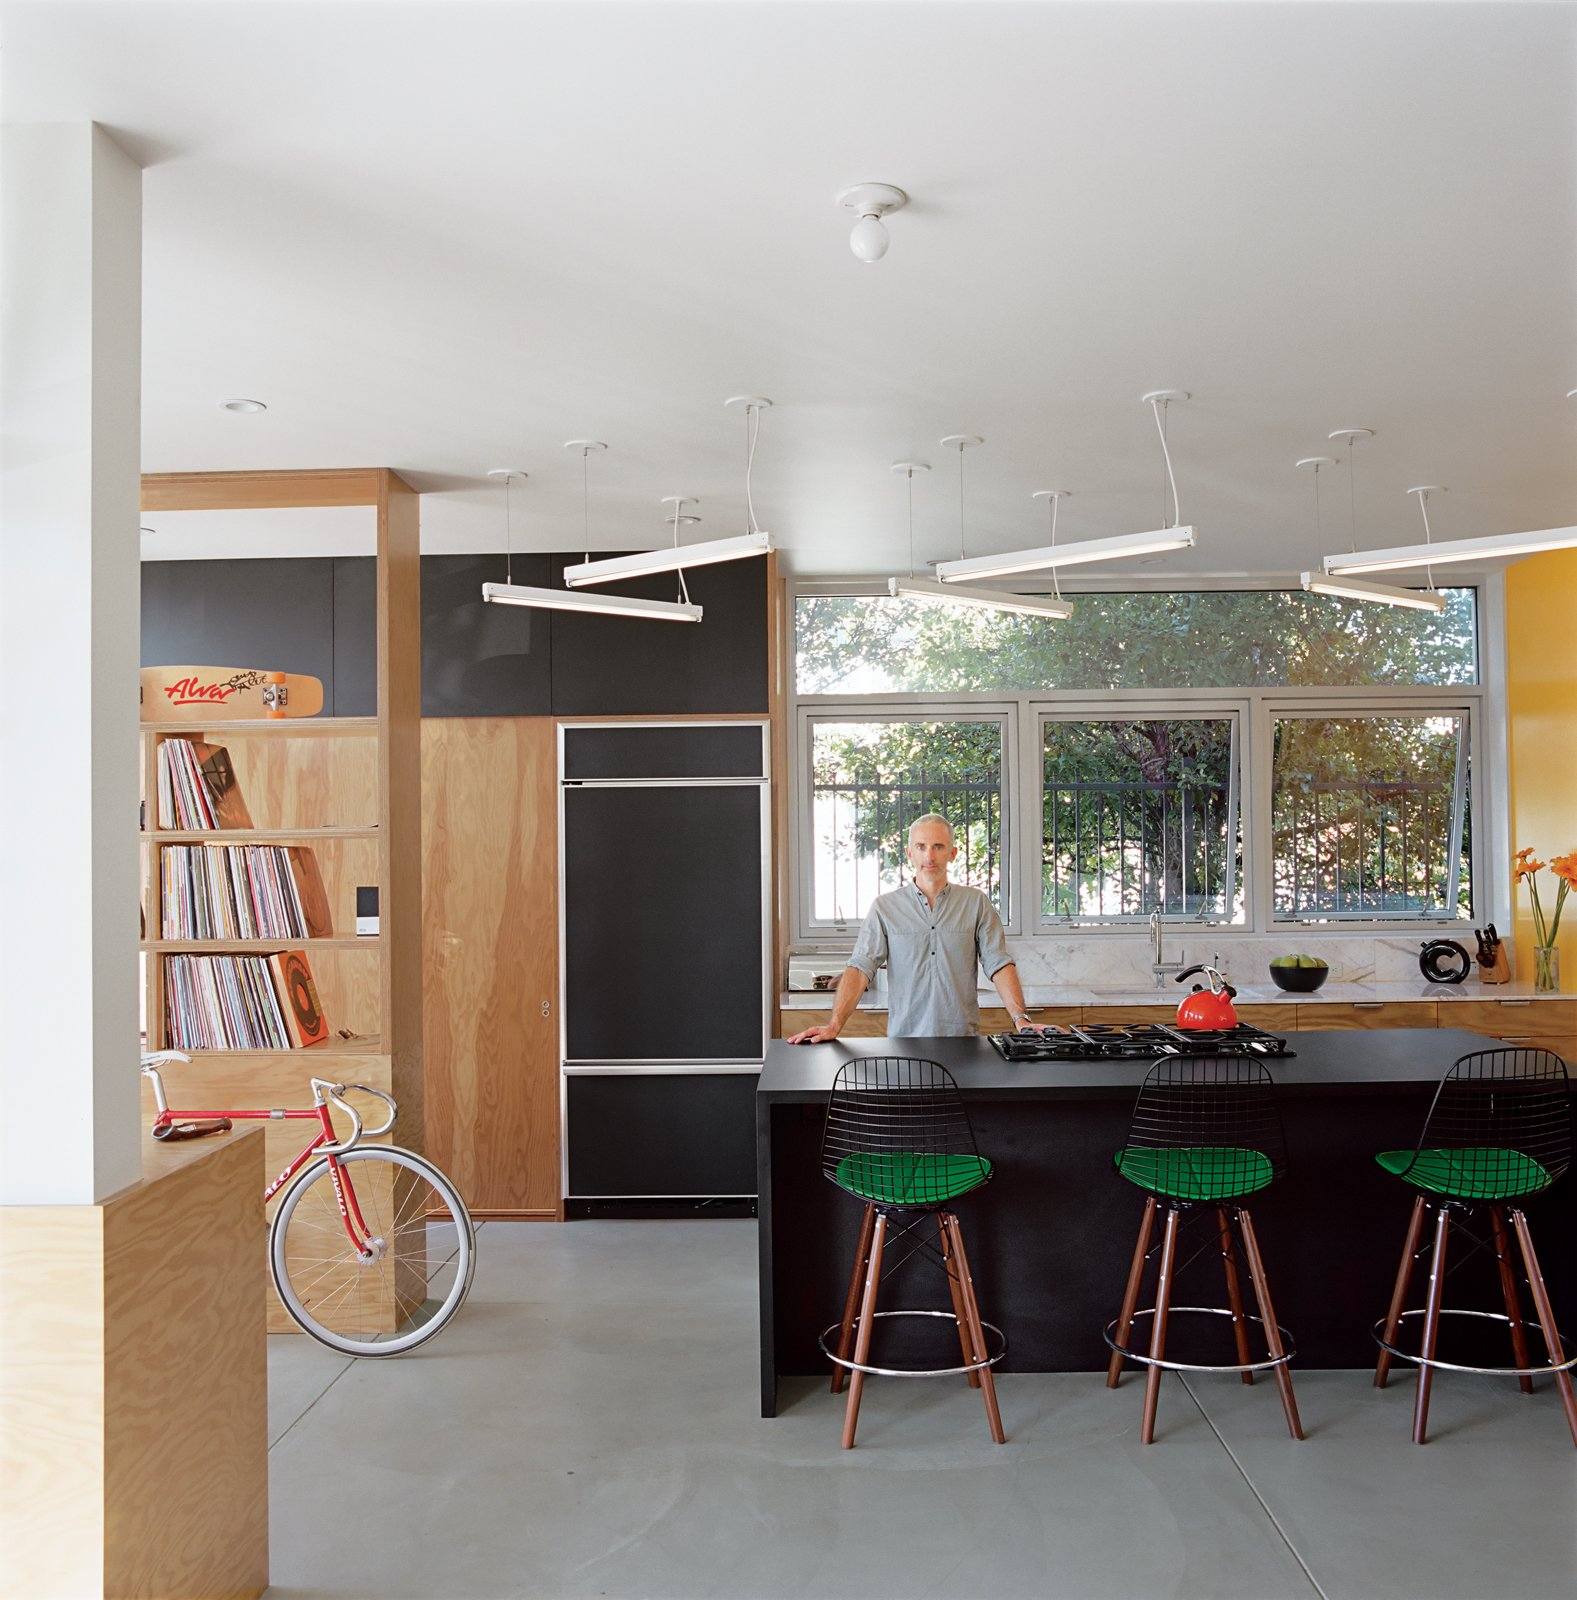 """The """"murdered kitchen"""" includes a fluorescent light sculpture with dimmable ballasts designed by Bestor. The rough plywood offers a nice chromatic contrast.  Photo 5 of 11 in Daft Punk Could Play at This House"""